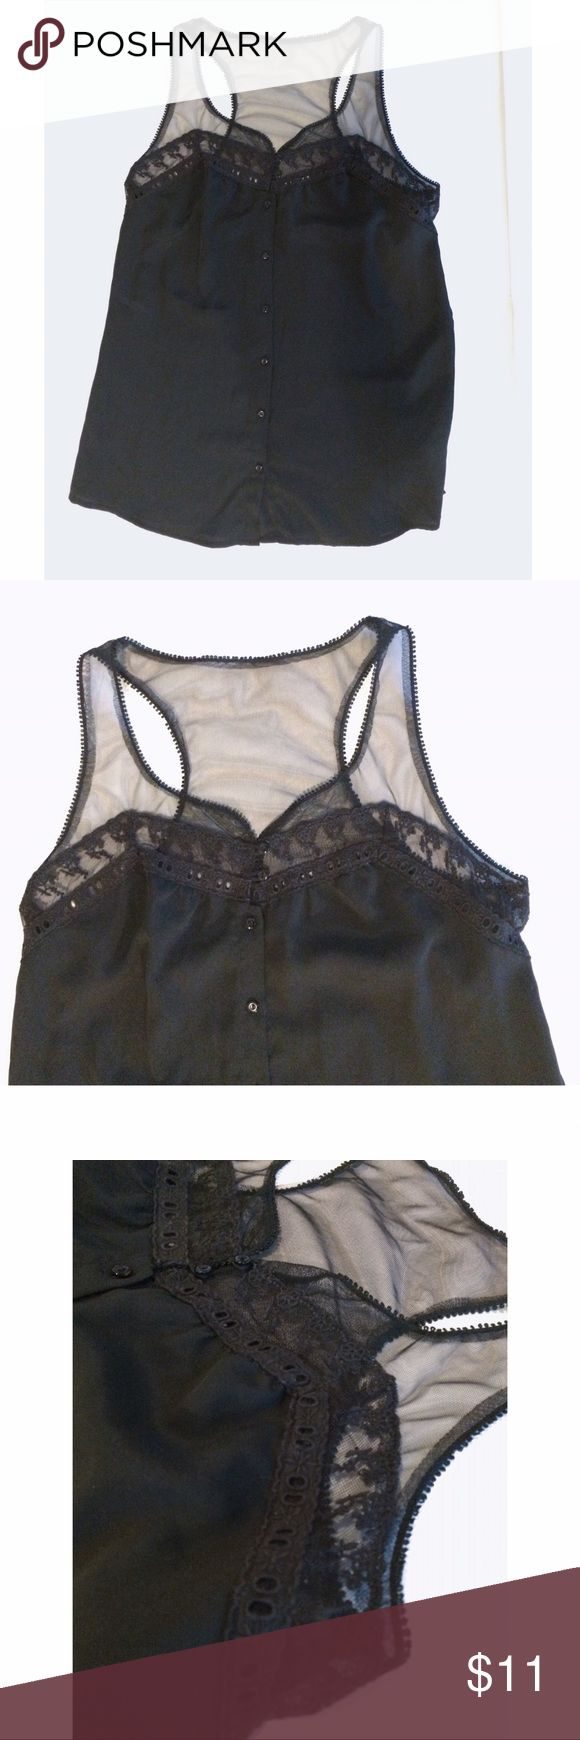 "Black Racer Back F21 Lace Top Sleeveless S Black Racer Back Lace Top Sleeveless size small. Excellent condition. Looks cute tucked in, left out, and even bottom 3 buttons undone and tie the front for a more flirty style.  16"" U to U and 25"" length. Tops"